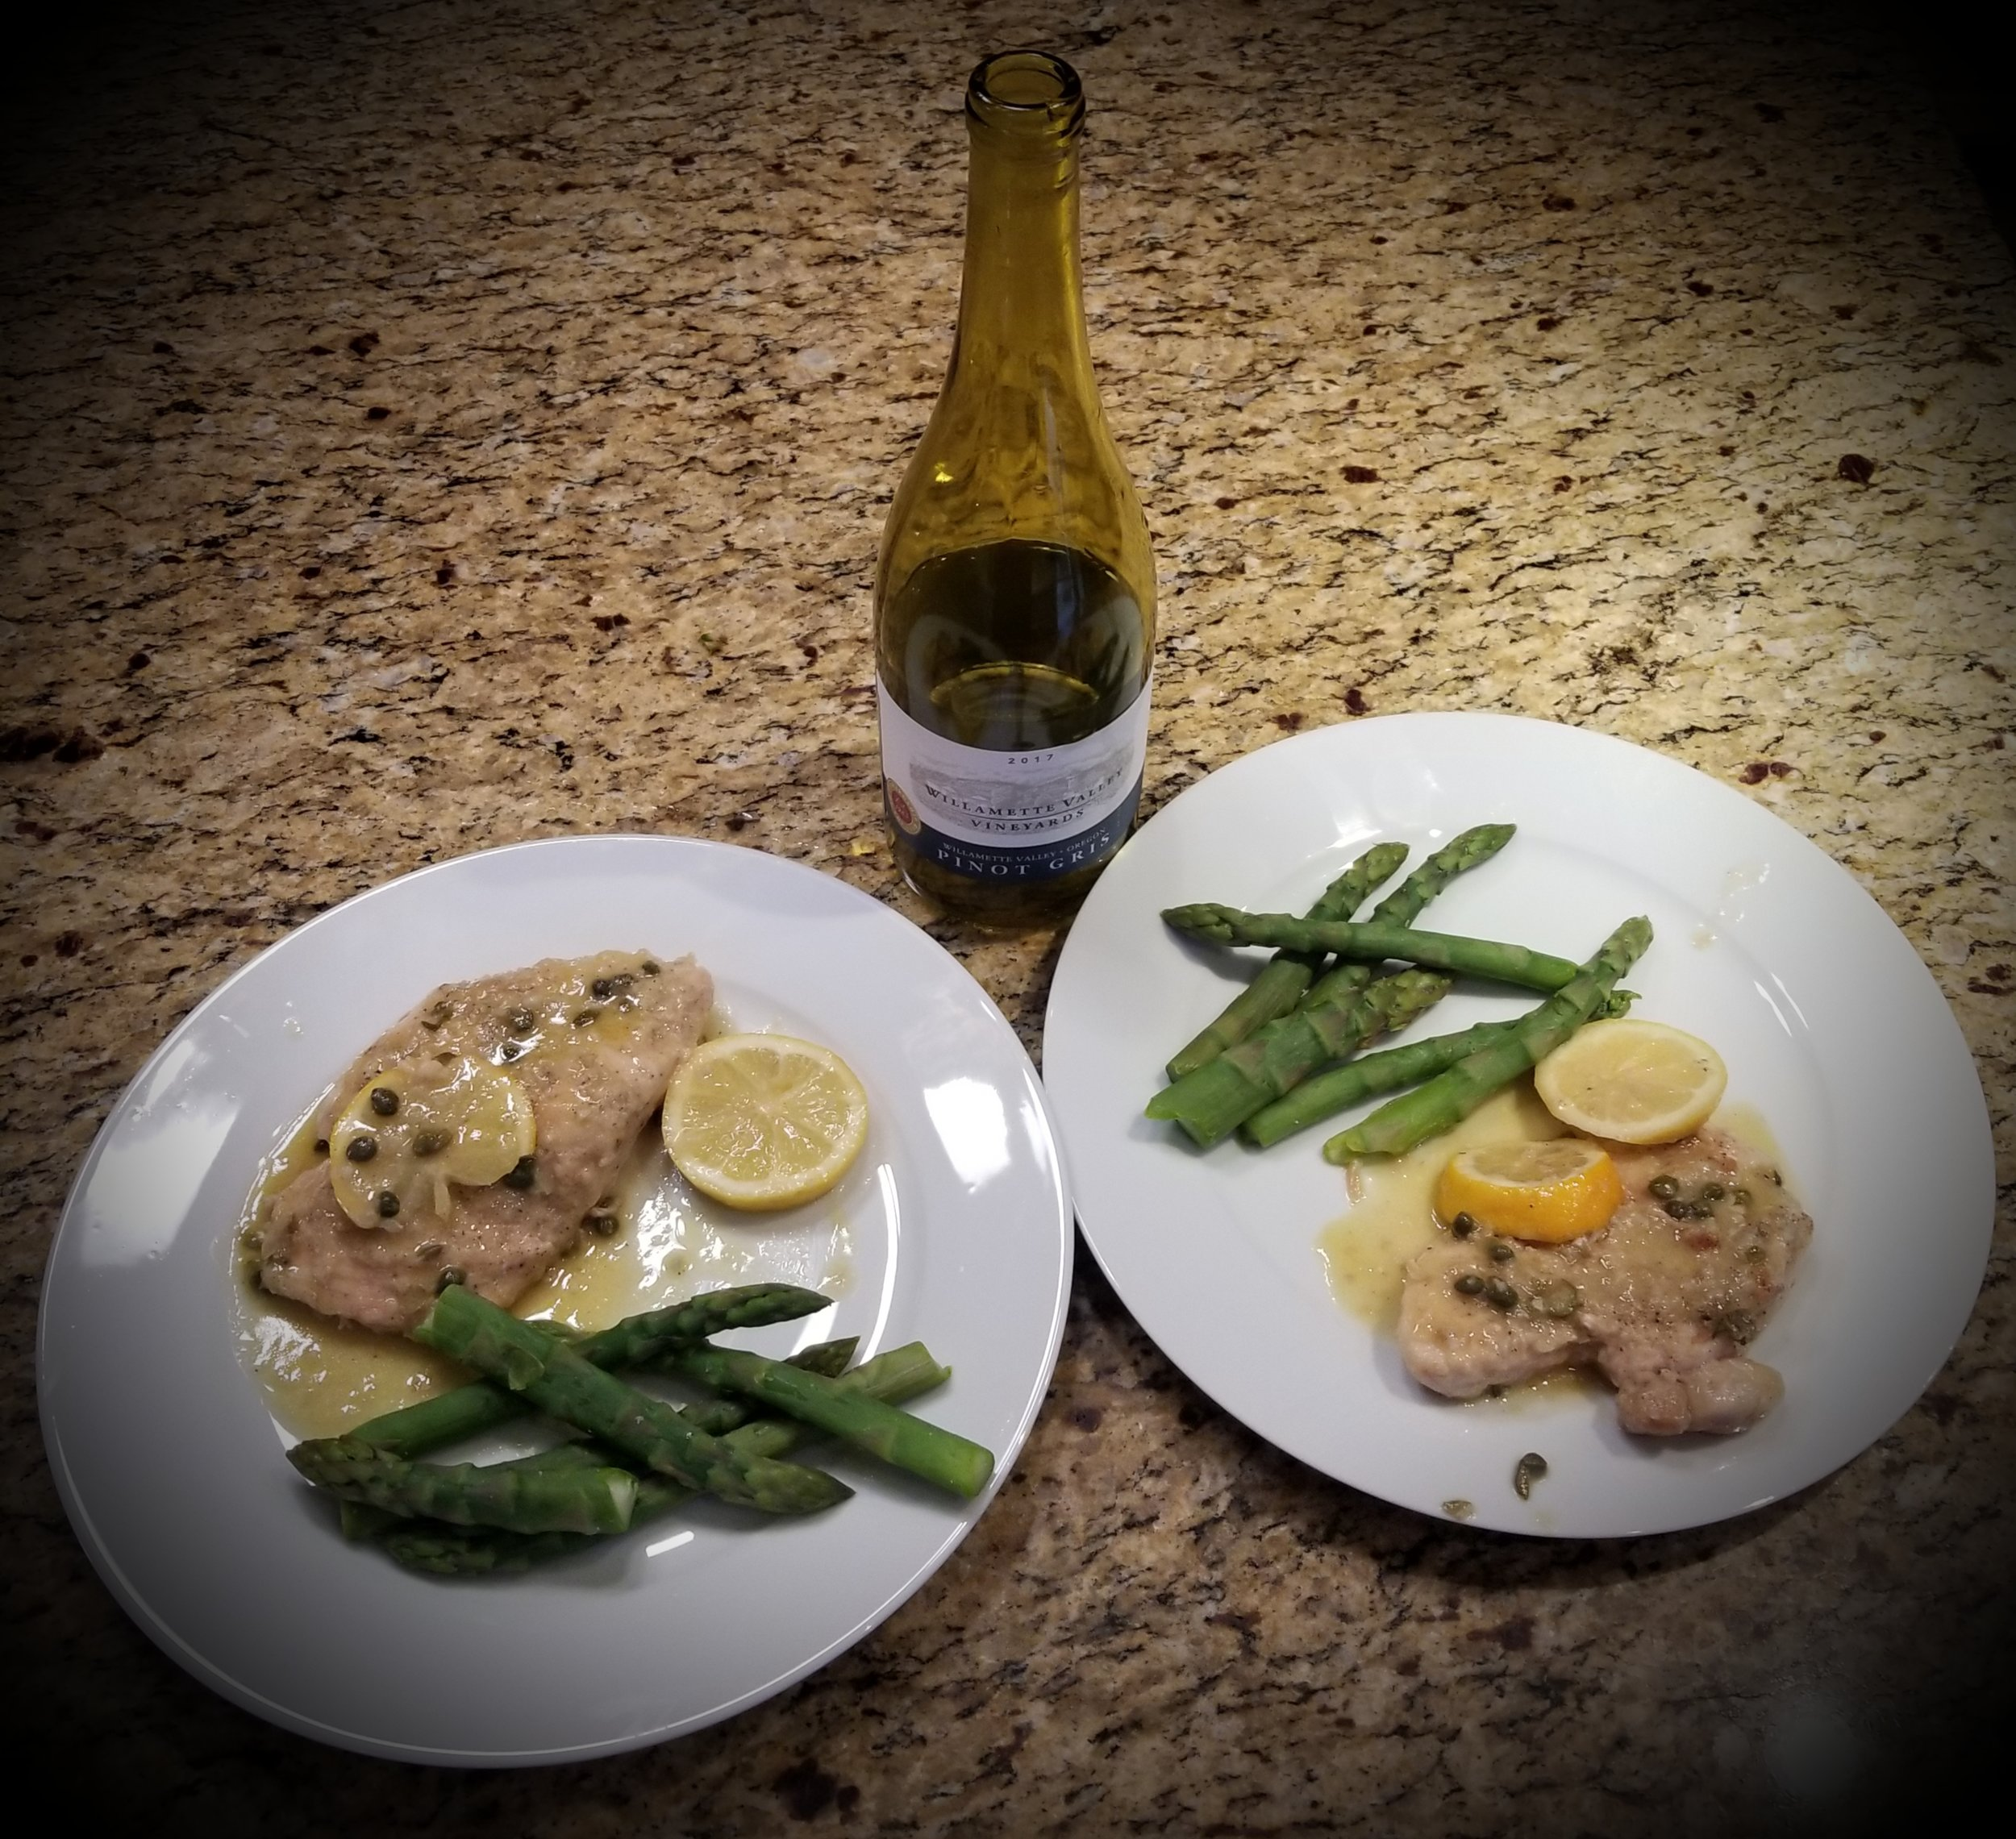 Chicken Piccata with Steamed Asparagus paired with Willamette Valley Vineyards Pinot Gris